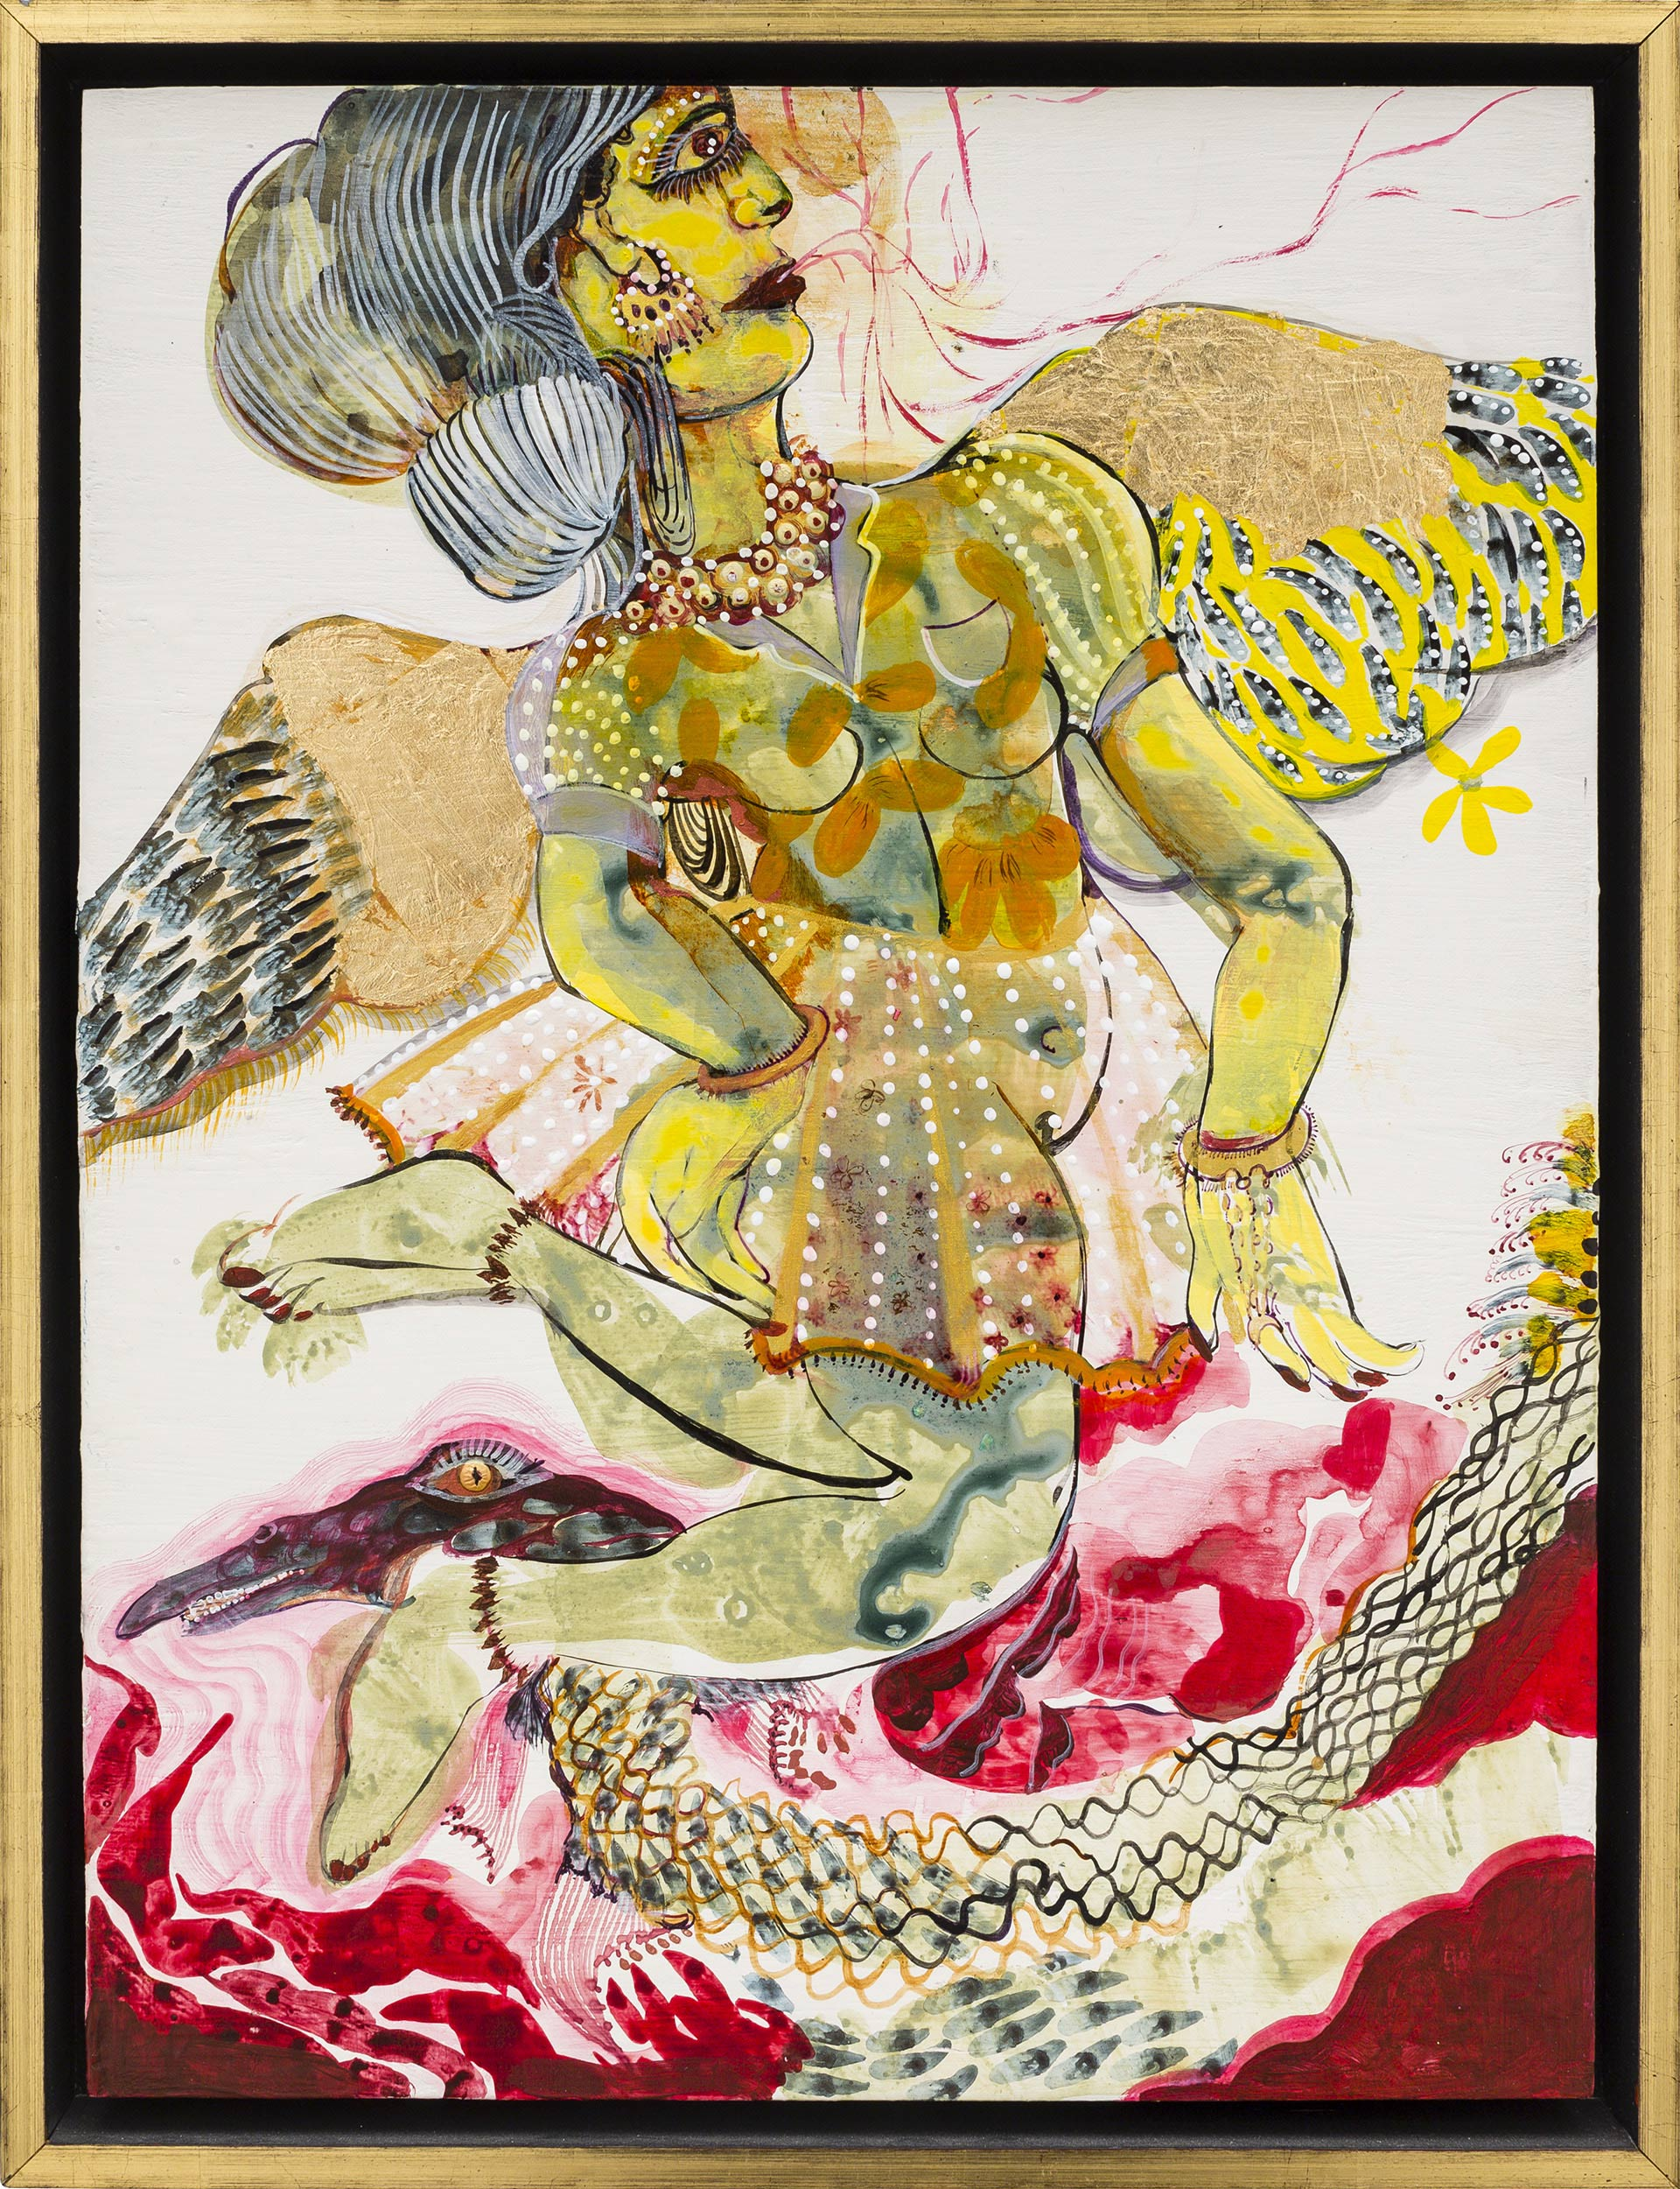 Rina Banerjee, Upon first Myth and empirical observation the hero, her angel leaps in cry, opens the moon to urge on a rain that may cleanse all the sweat of her jealous man, 2013–20, acrylic, ink, and gold leaf on panel, Collection of the Artist, © Rina Banerjee